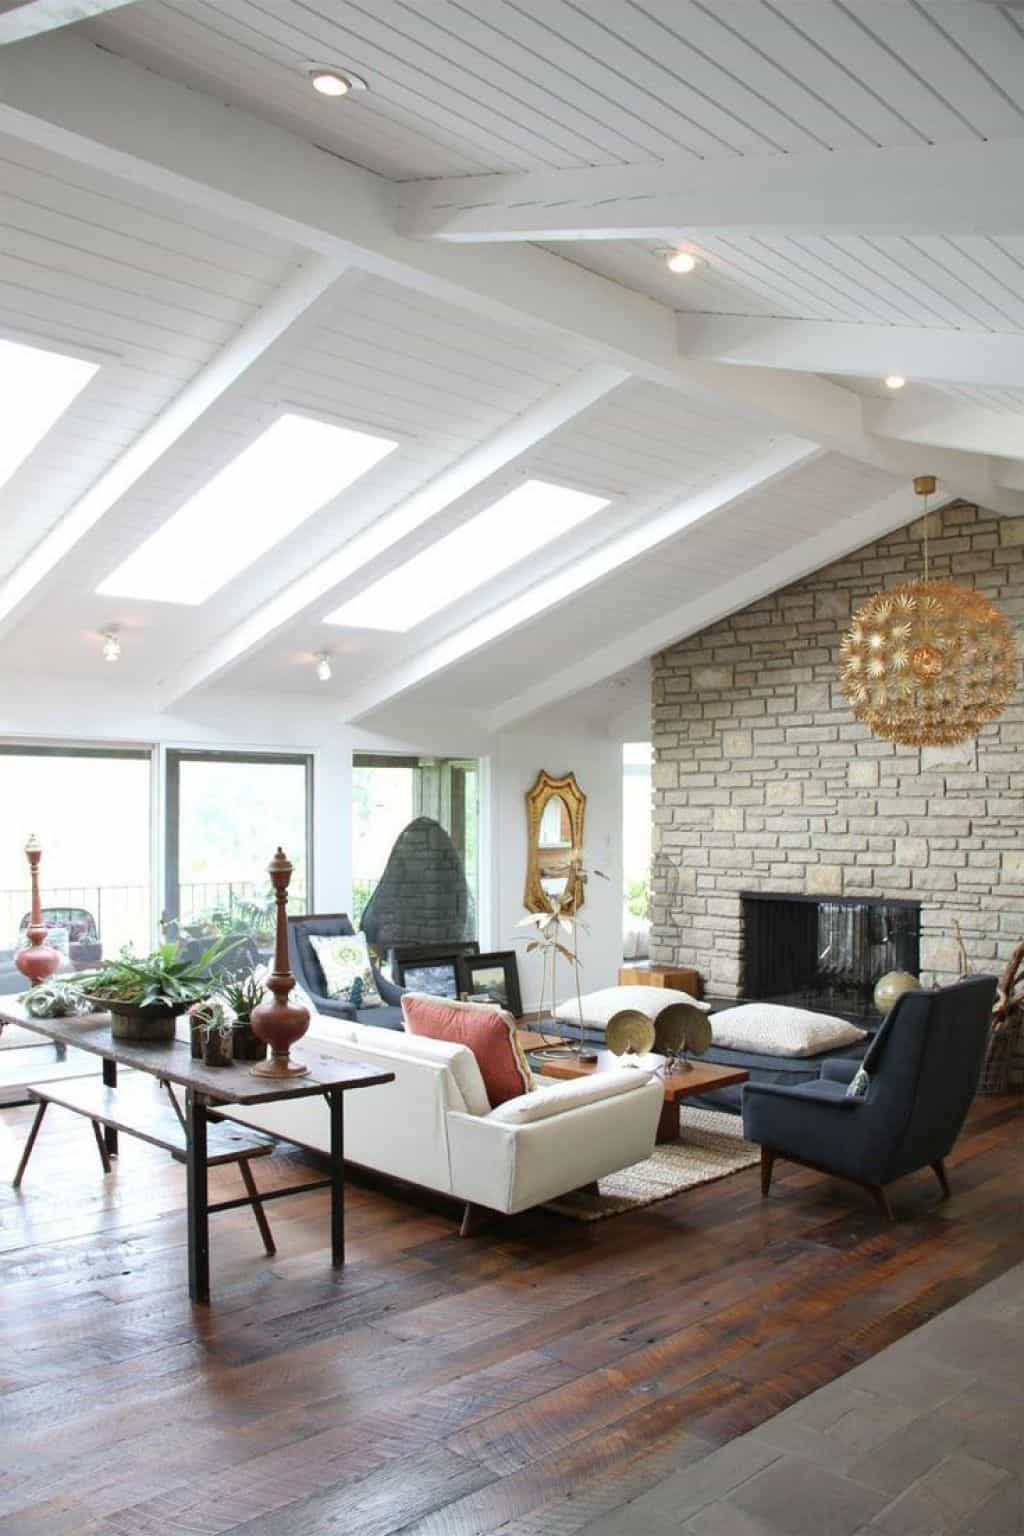 Best Vaulted Ceiling Design With Skylights Mid Century Modern 400 x 300